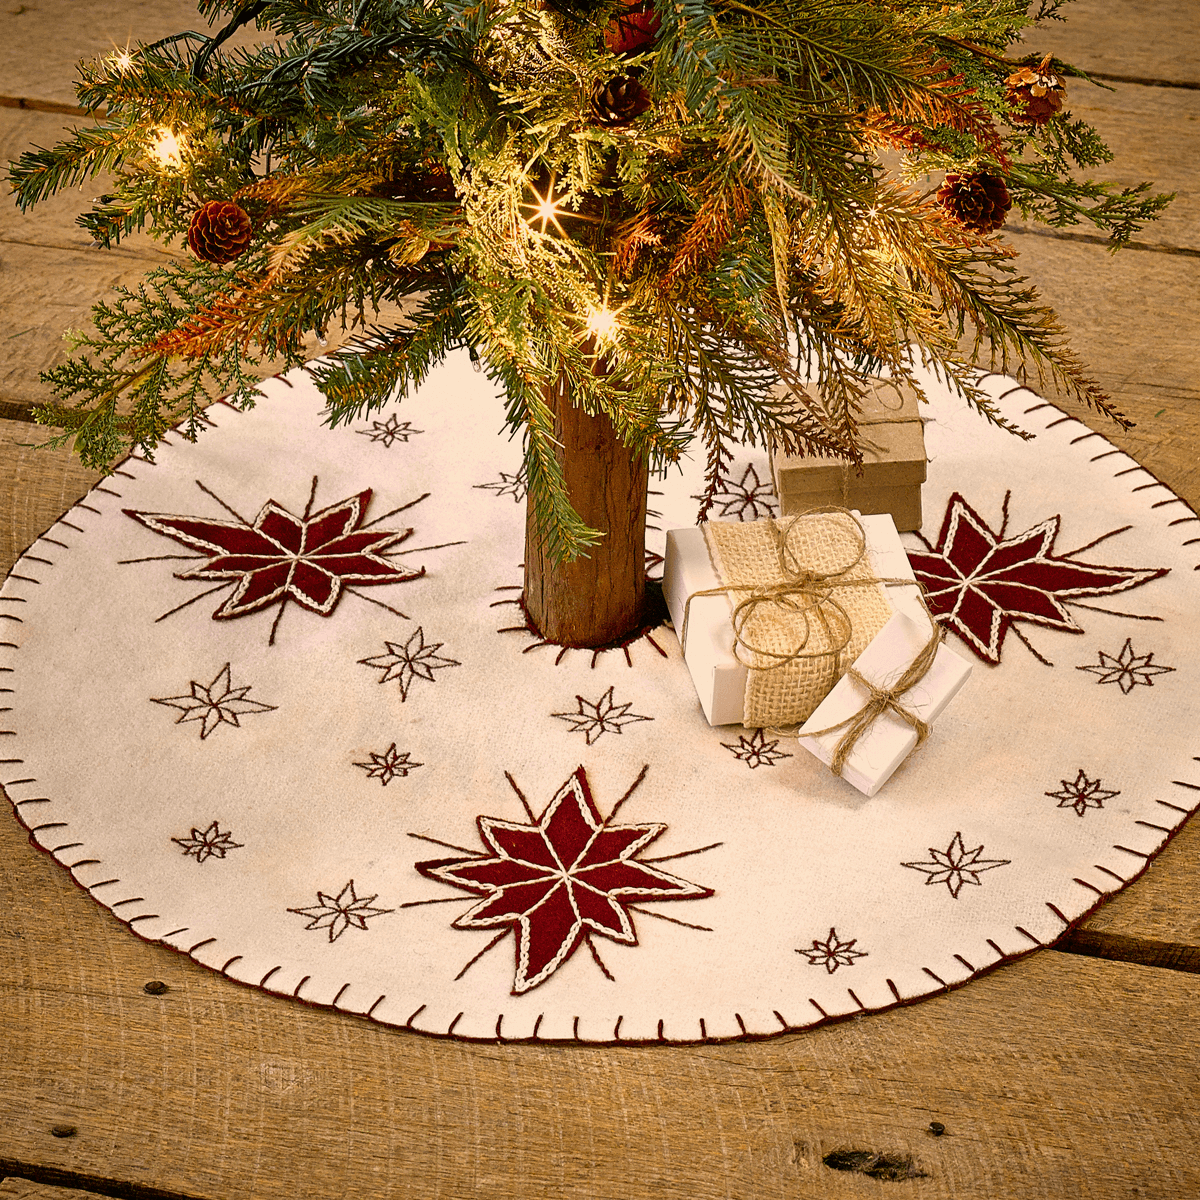 North Star Mini Tree Skirt - Teton Timberline Trading - Winter White ...